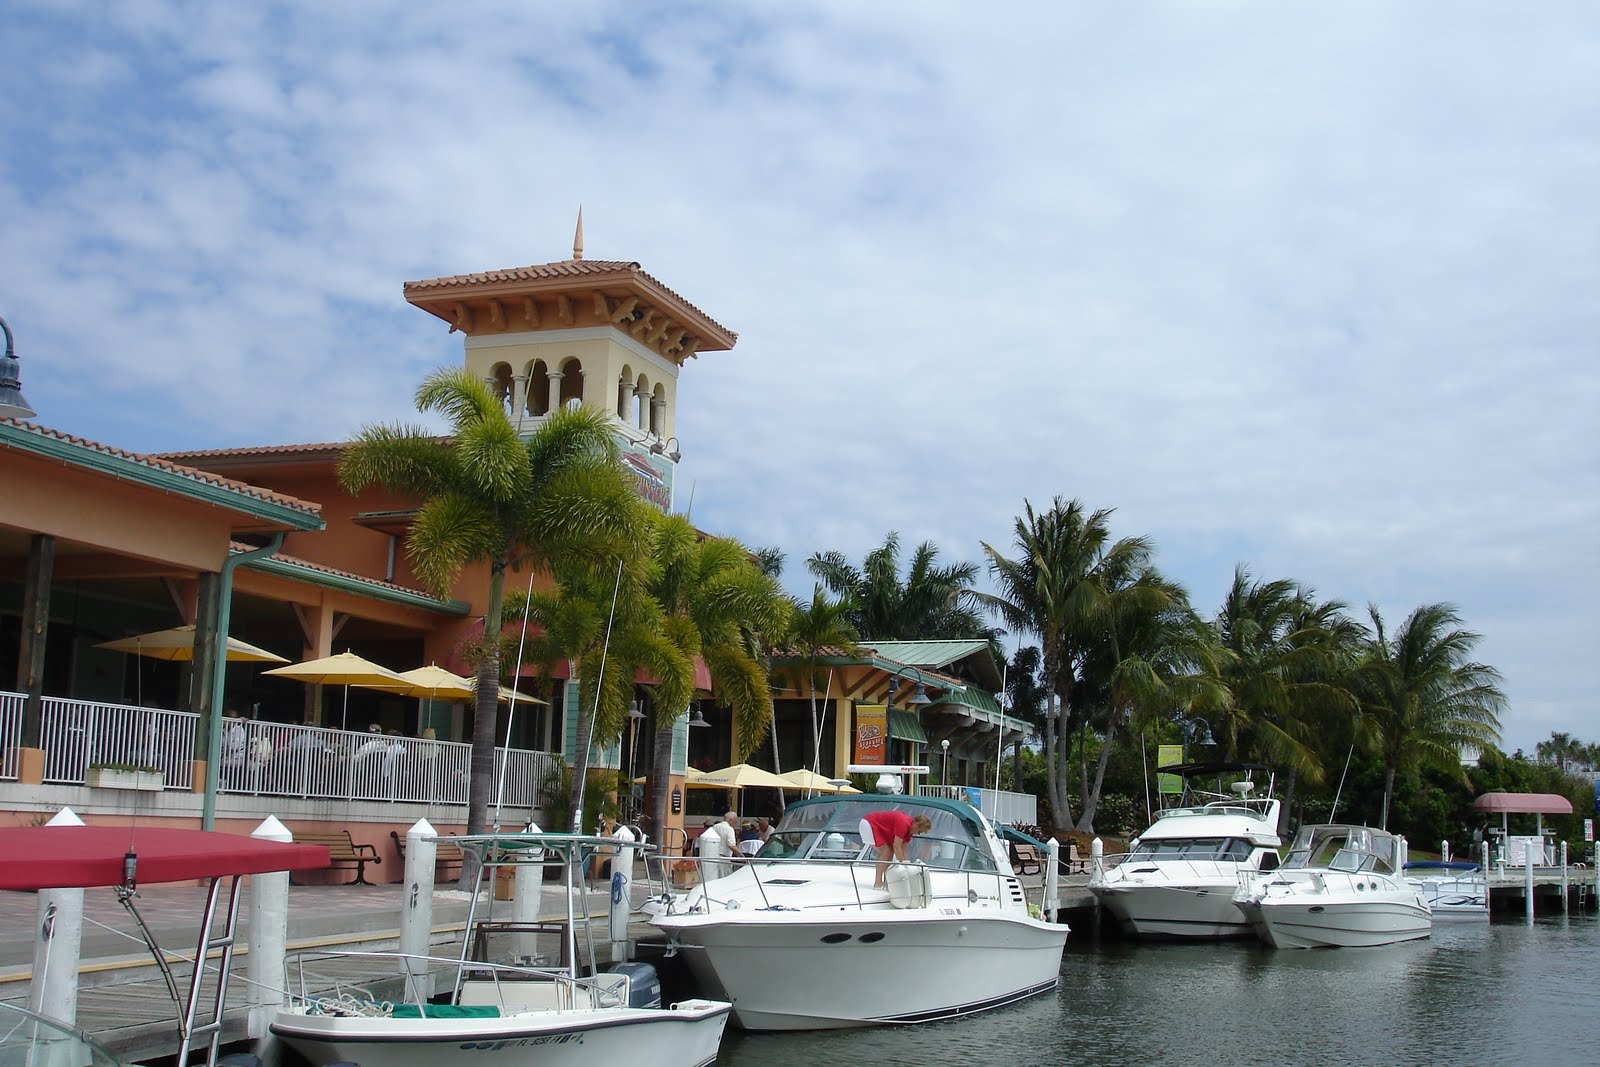 Travels tourisum affordable places to live in florida for Best small cities to live in florida